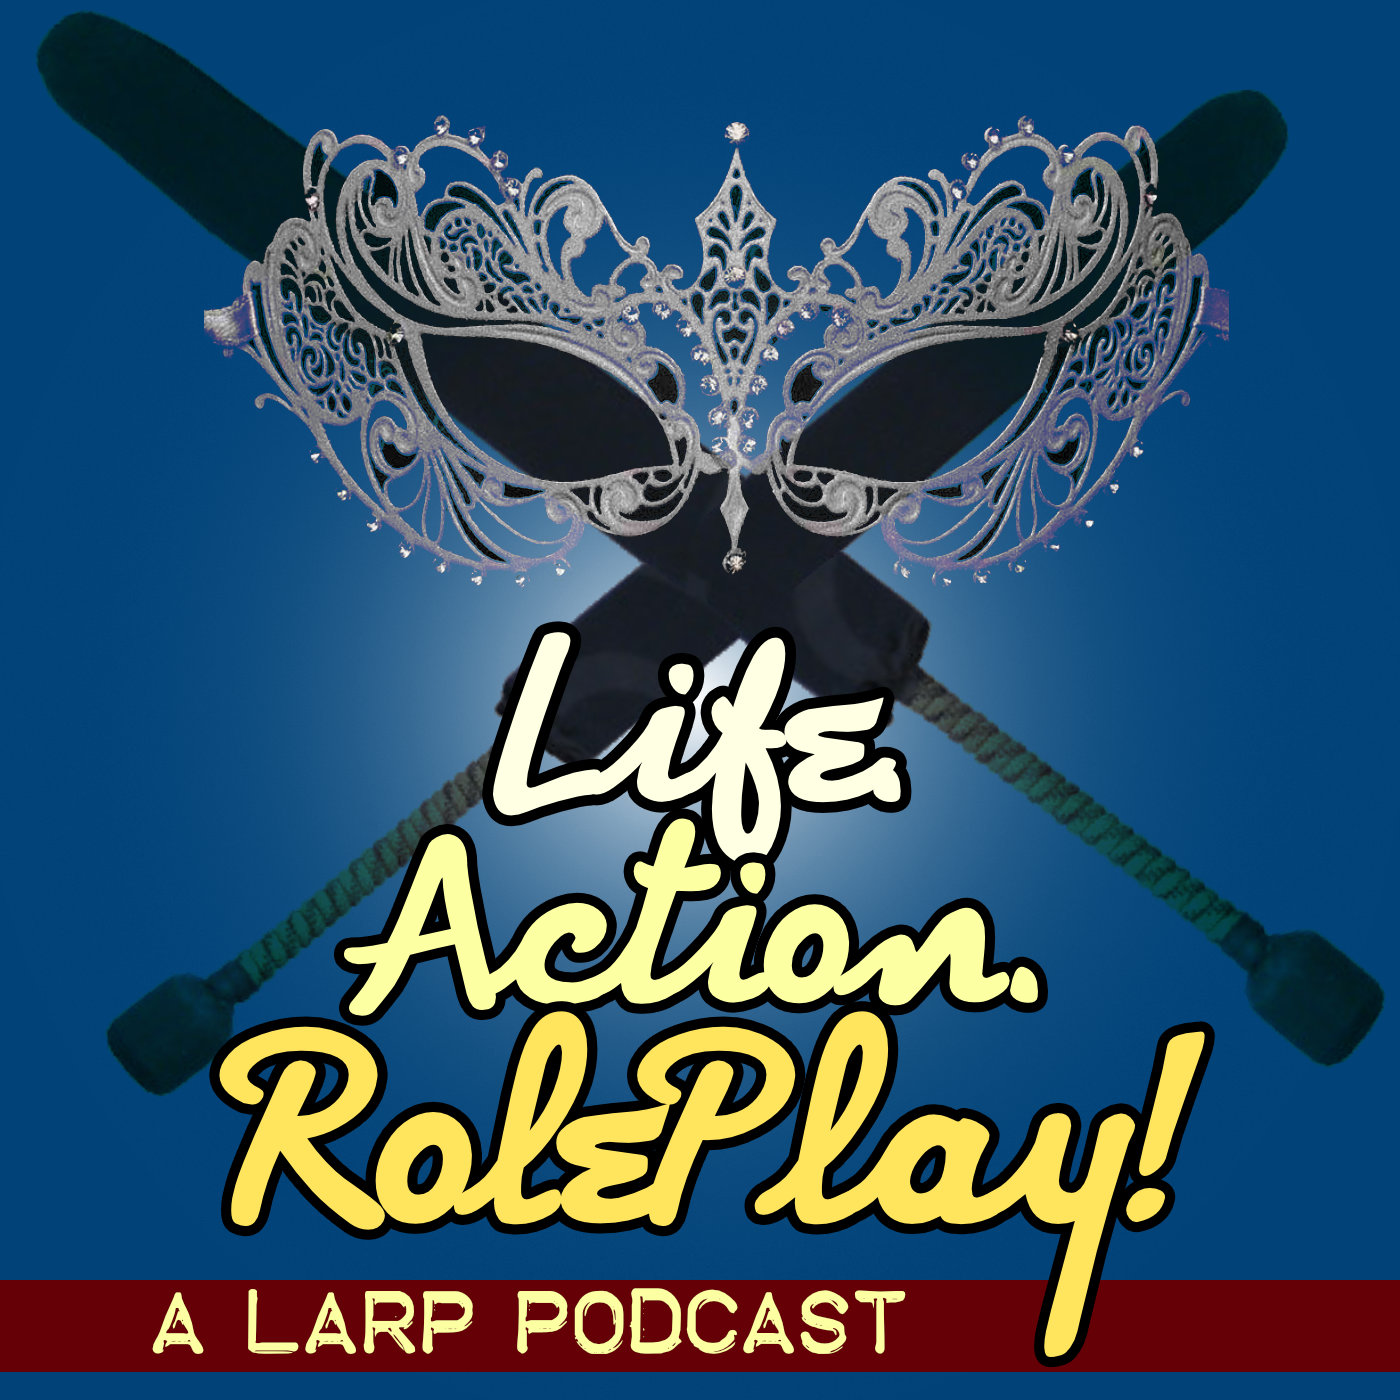 Life. Action. RolePlay! Vampire Storytelling and Player Immersion (feat. Jason Carl)